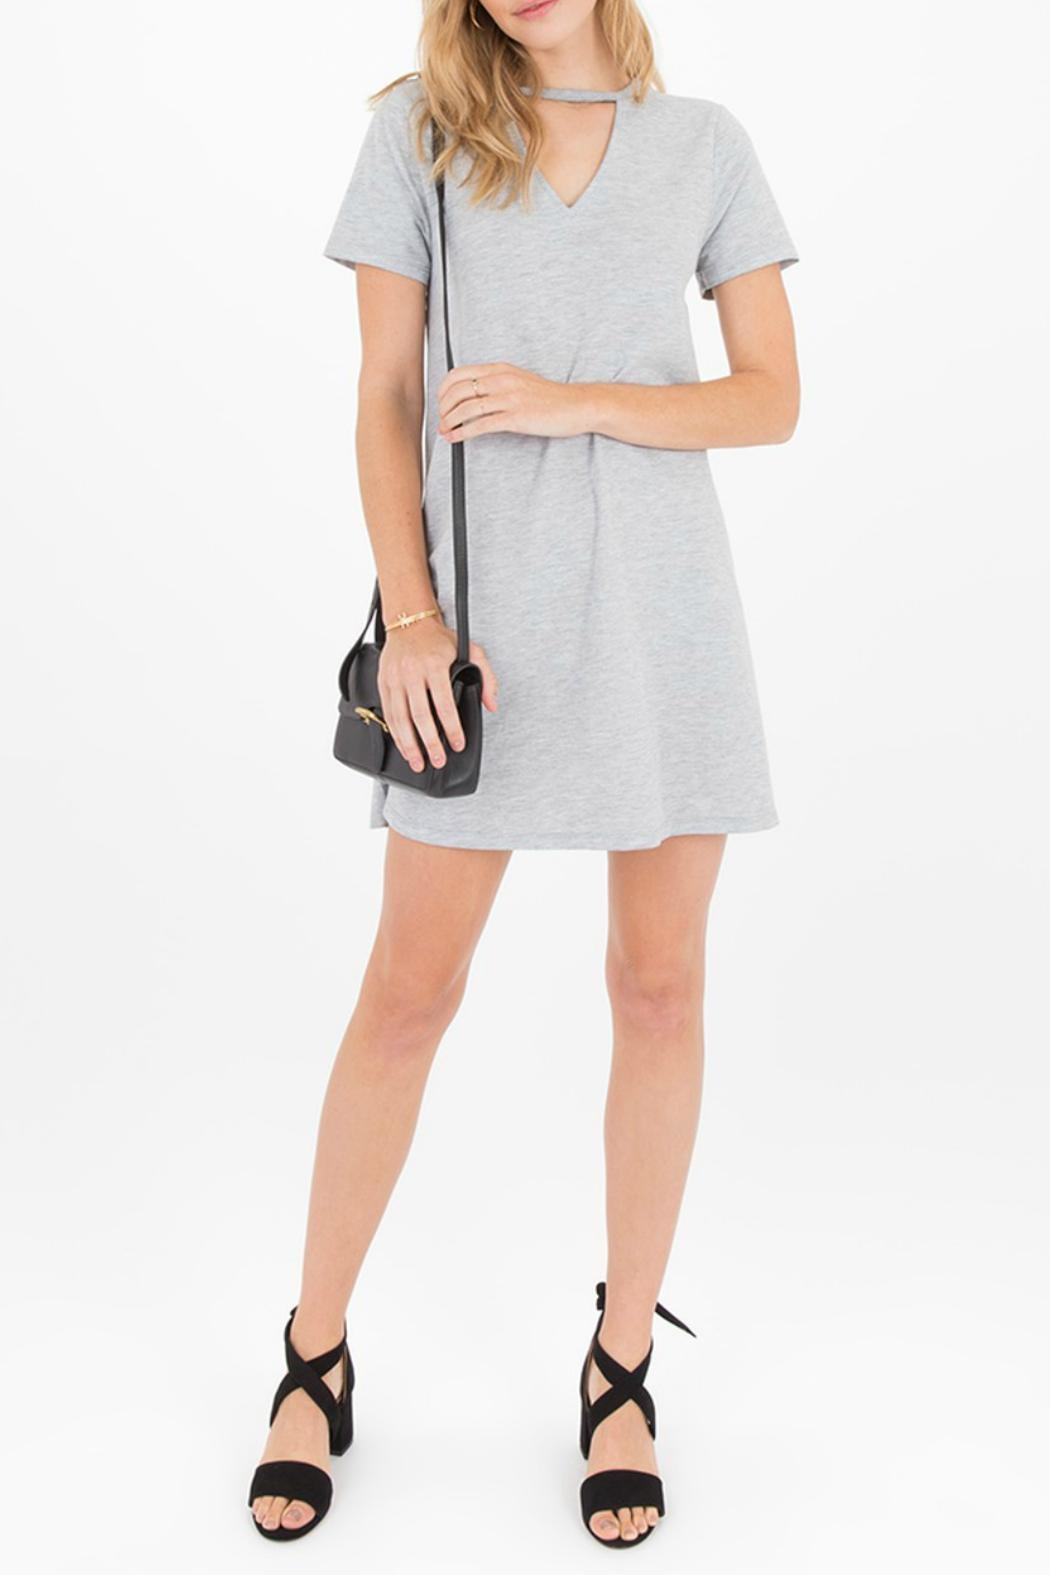 z supply Cutout Front Dress - Back Cropped Image